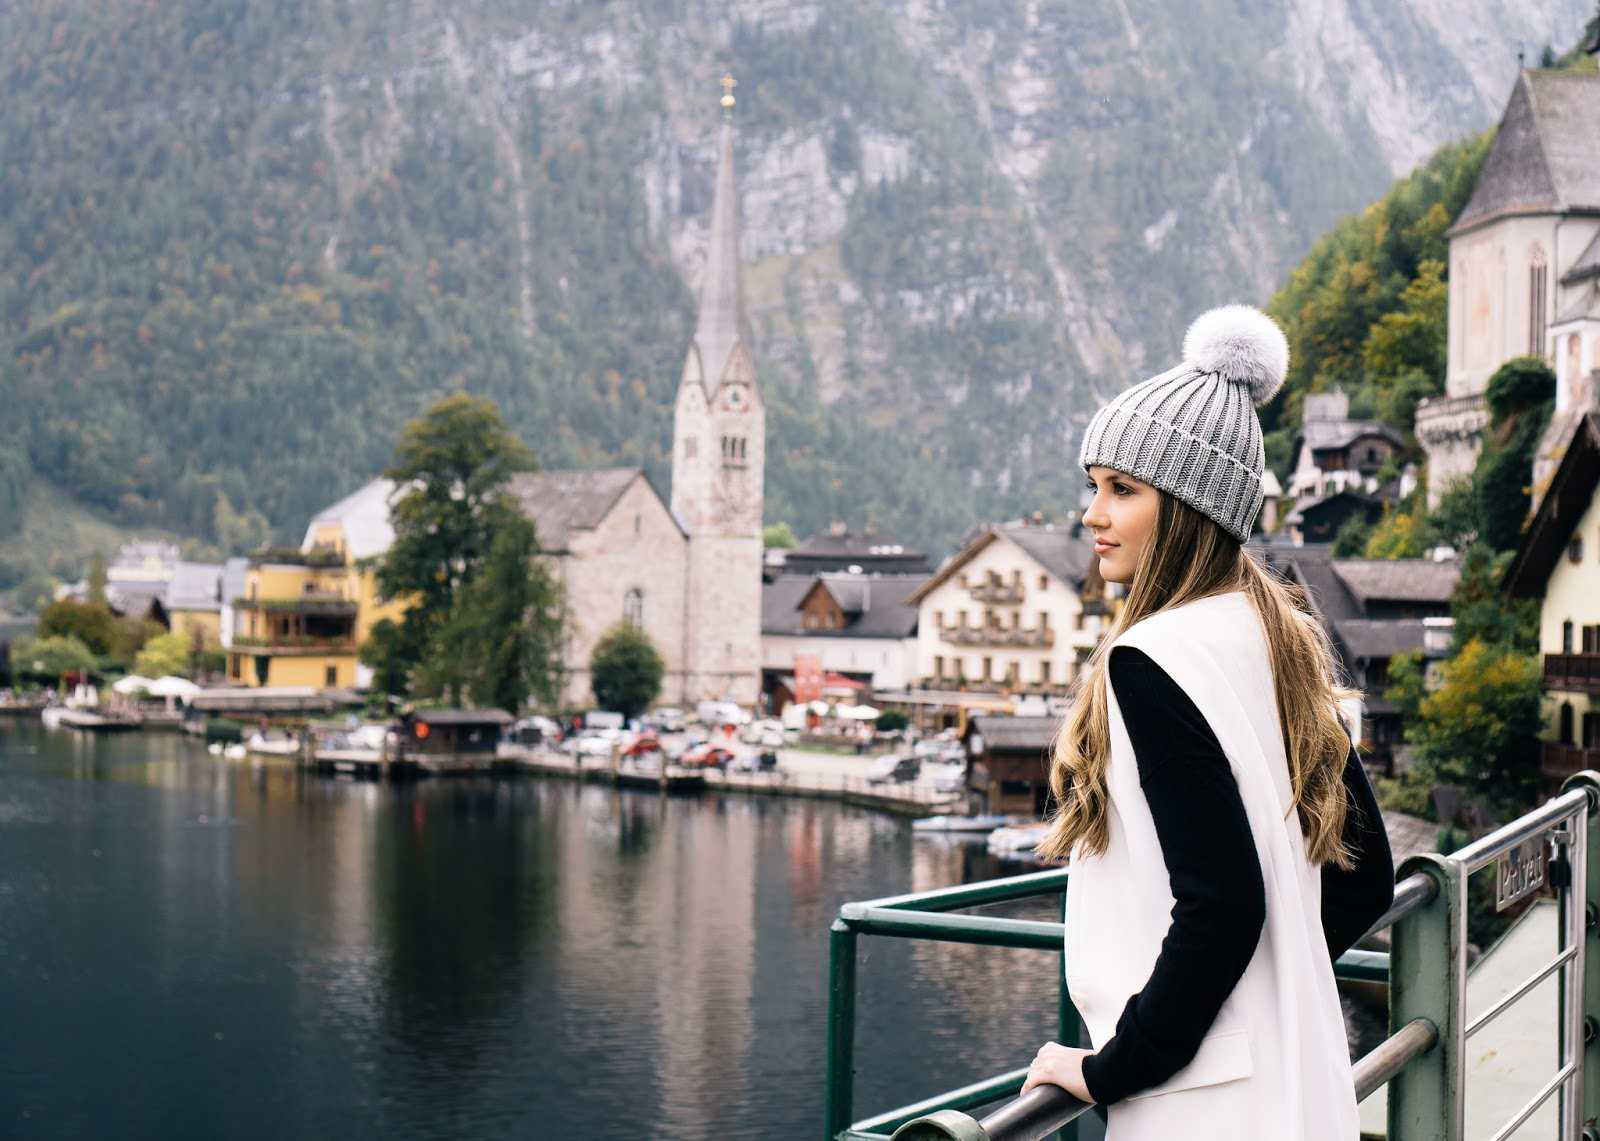 24-Hours-In-Hallstatt